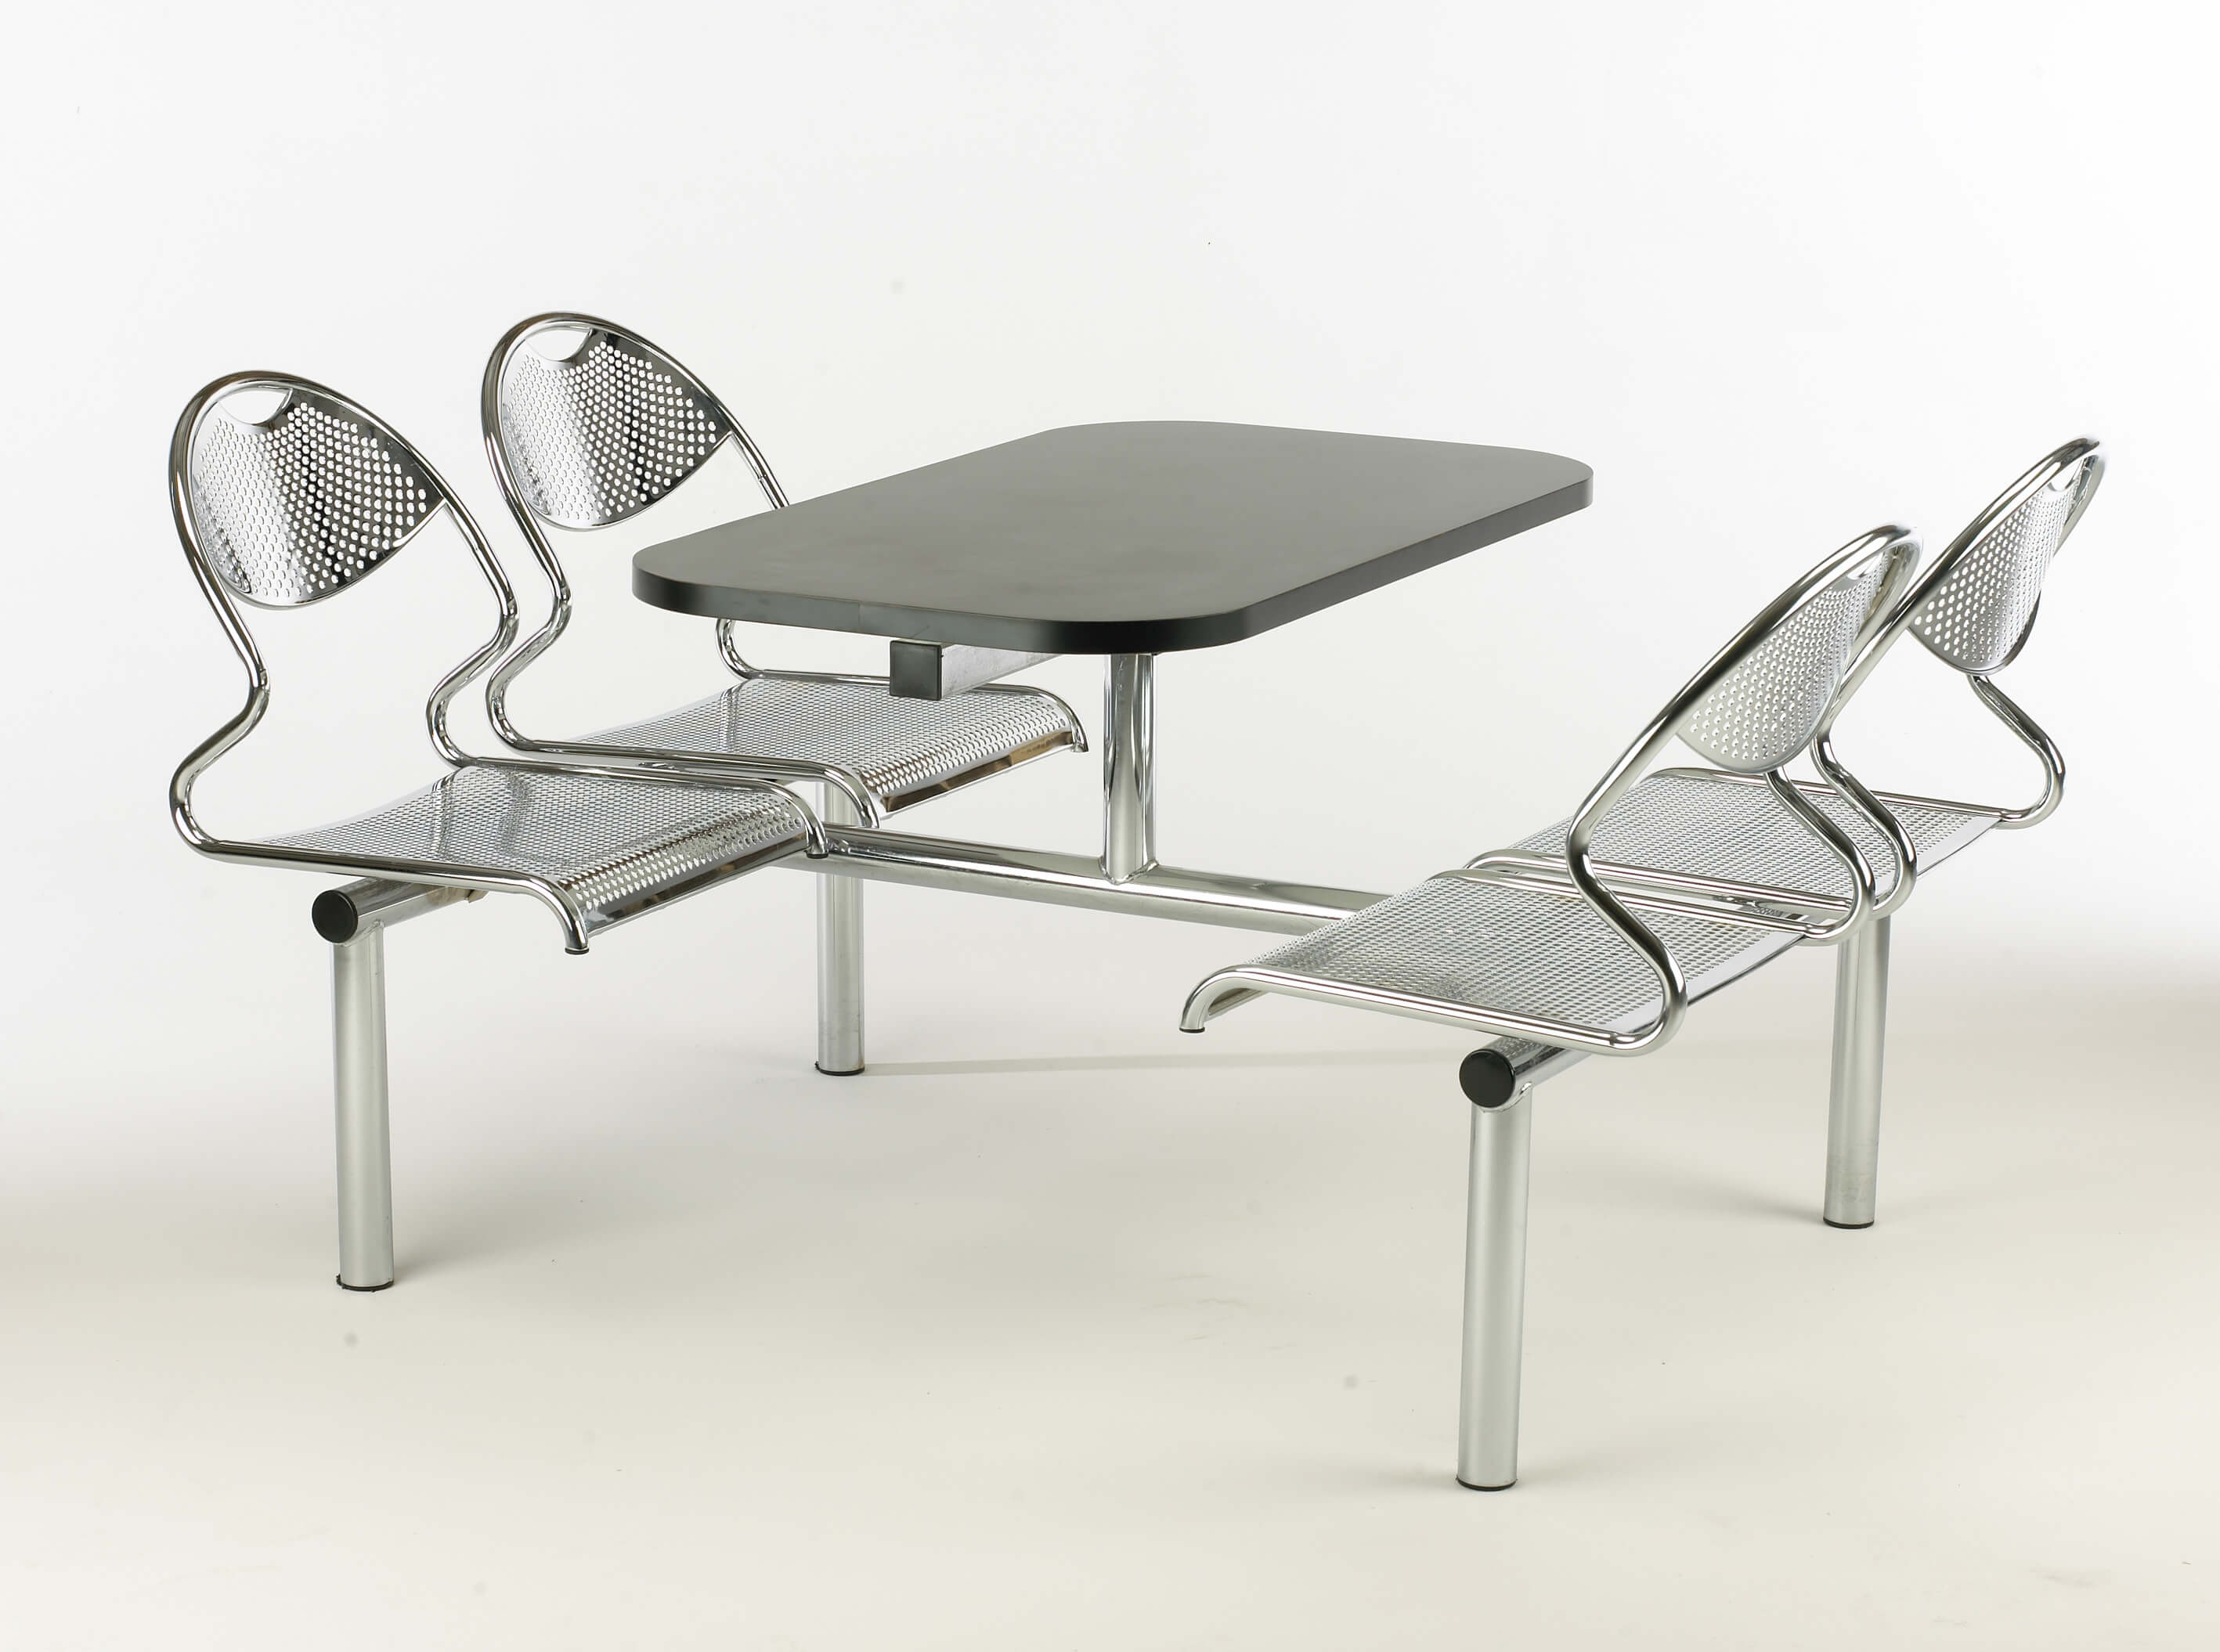 SPACE Canteen Table with Metal Frame & Seats